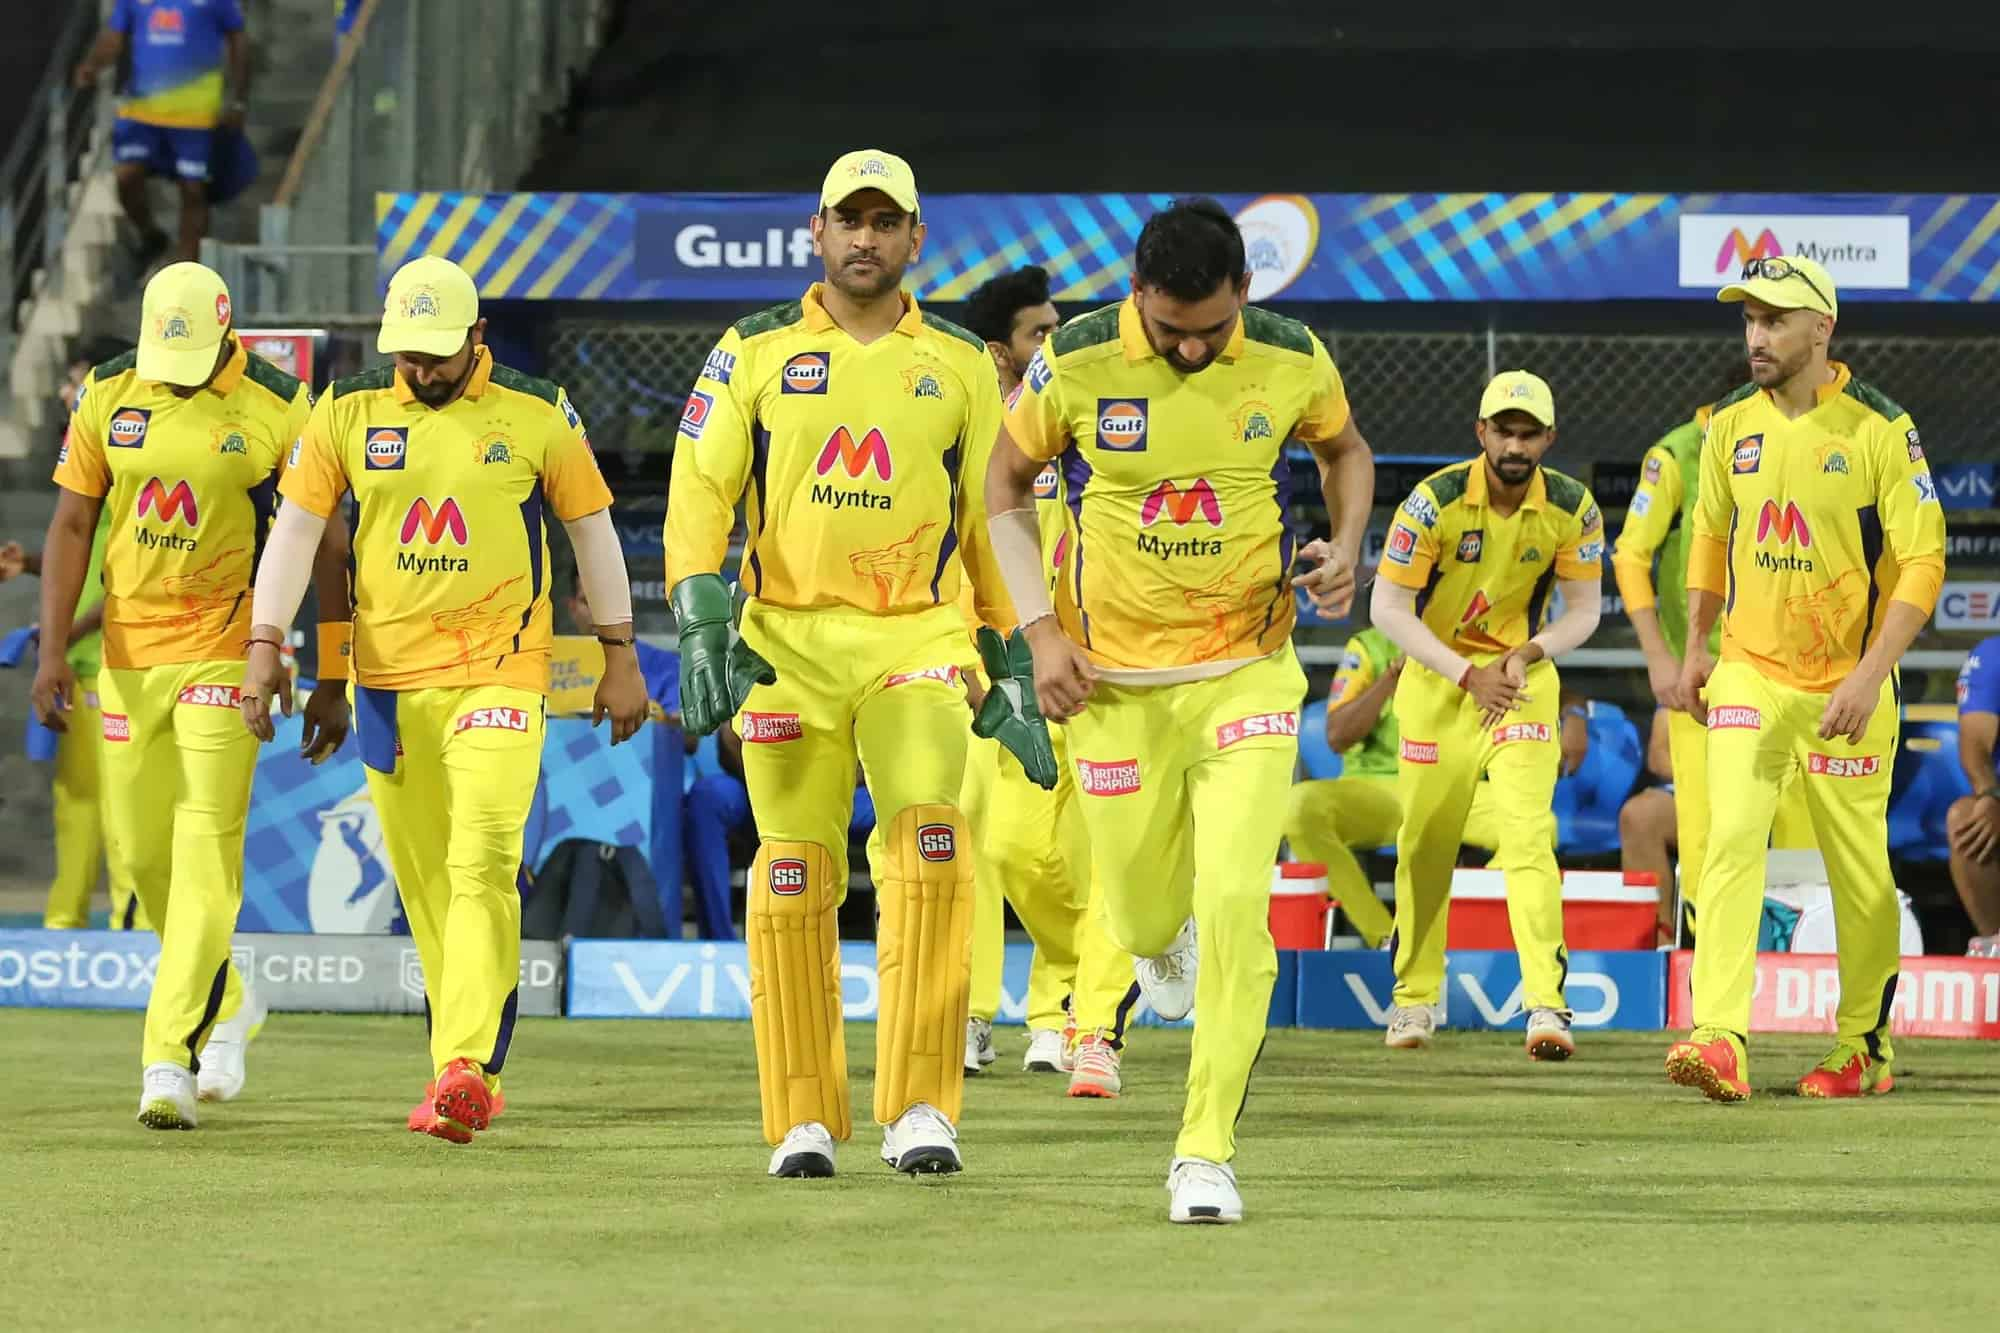 IPL 2021: Chennai Super Kings (CSK) Updated Squad For 2nd Leg In UAE